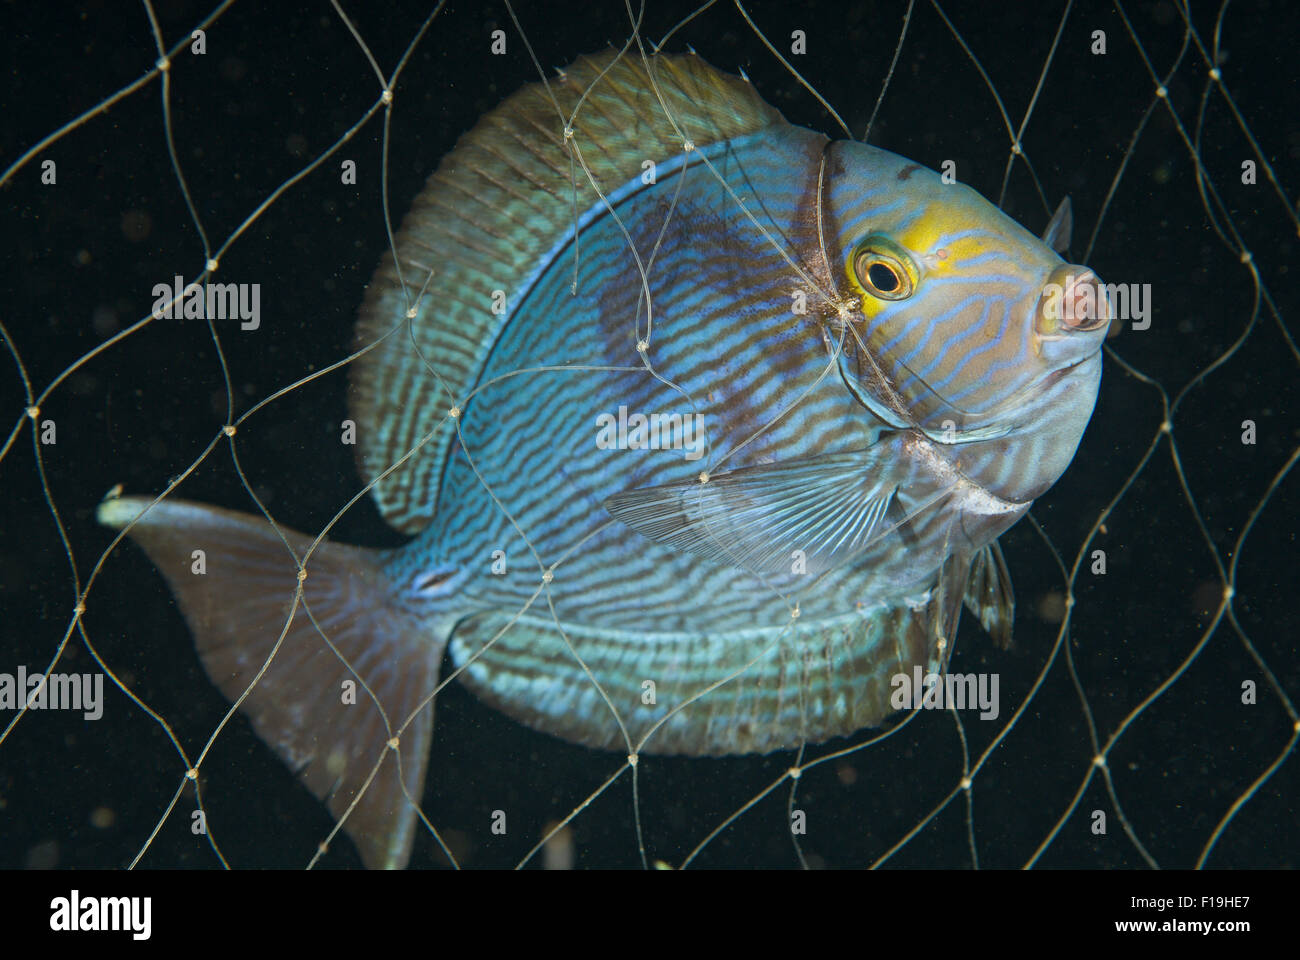 px520355-D. Yellowmask Surgeonfish (Acanthurus mata), caught in fishing net. Indonesia, tropical Pacific Ocean. - Stock Image